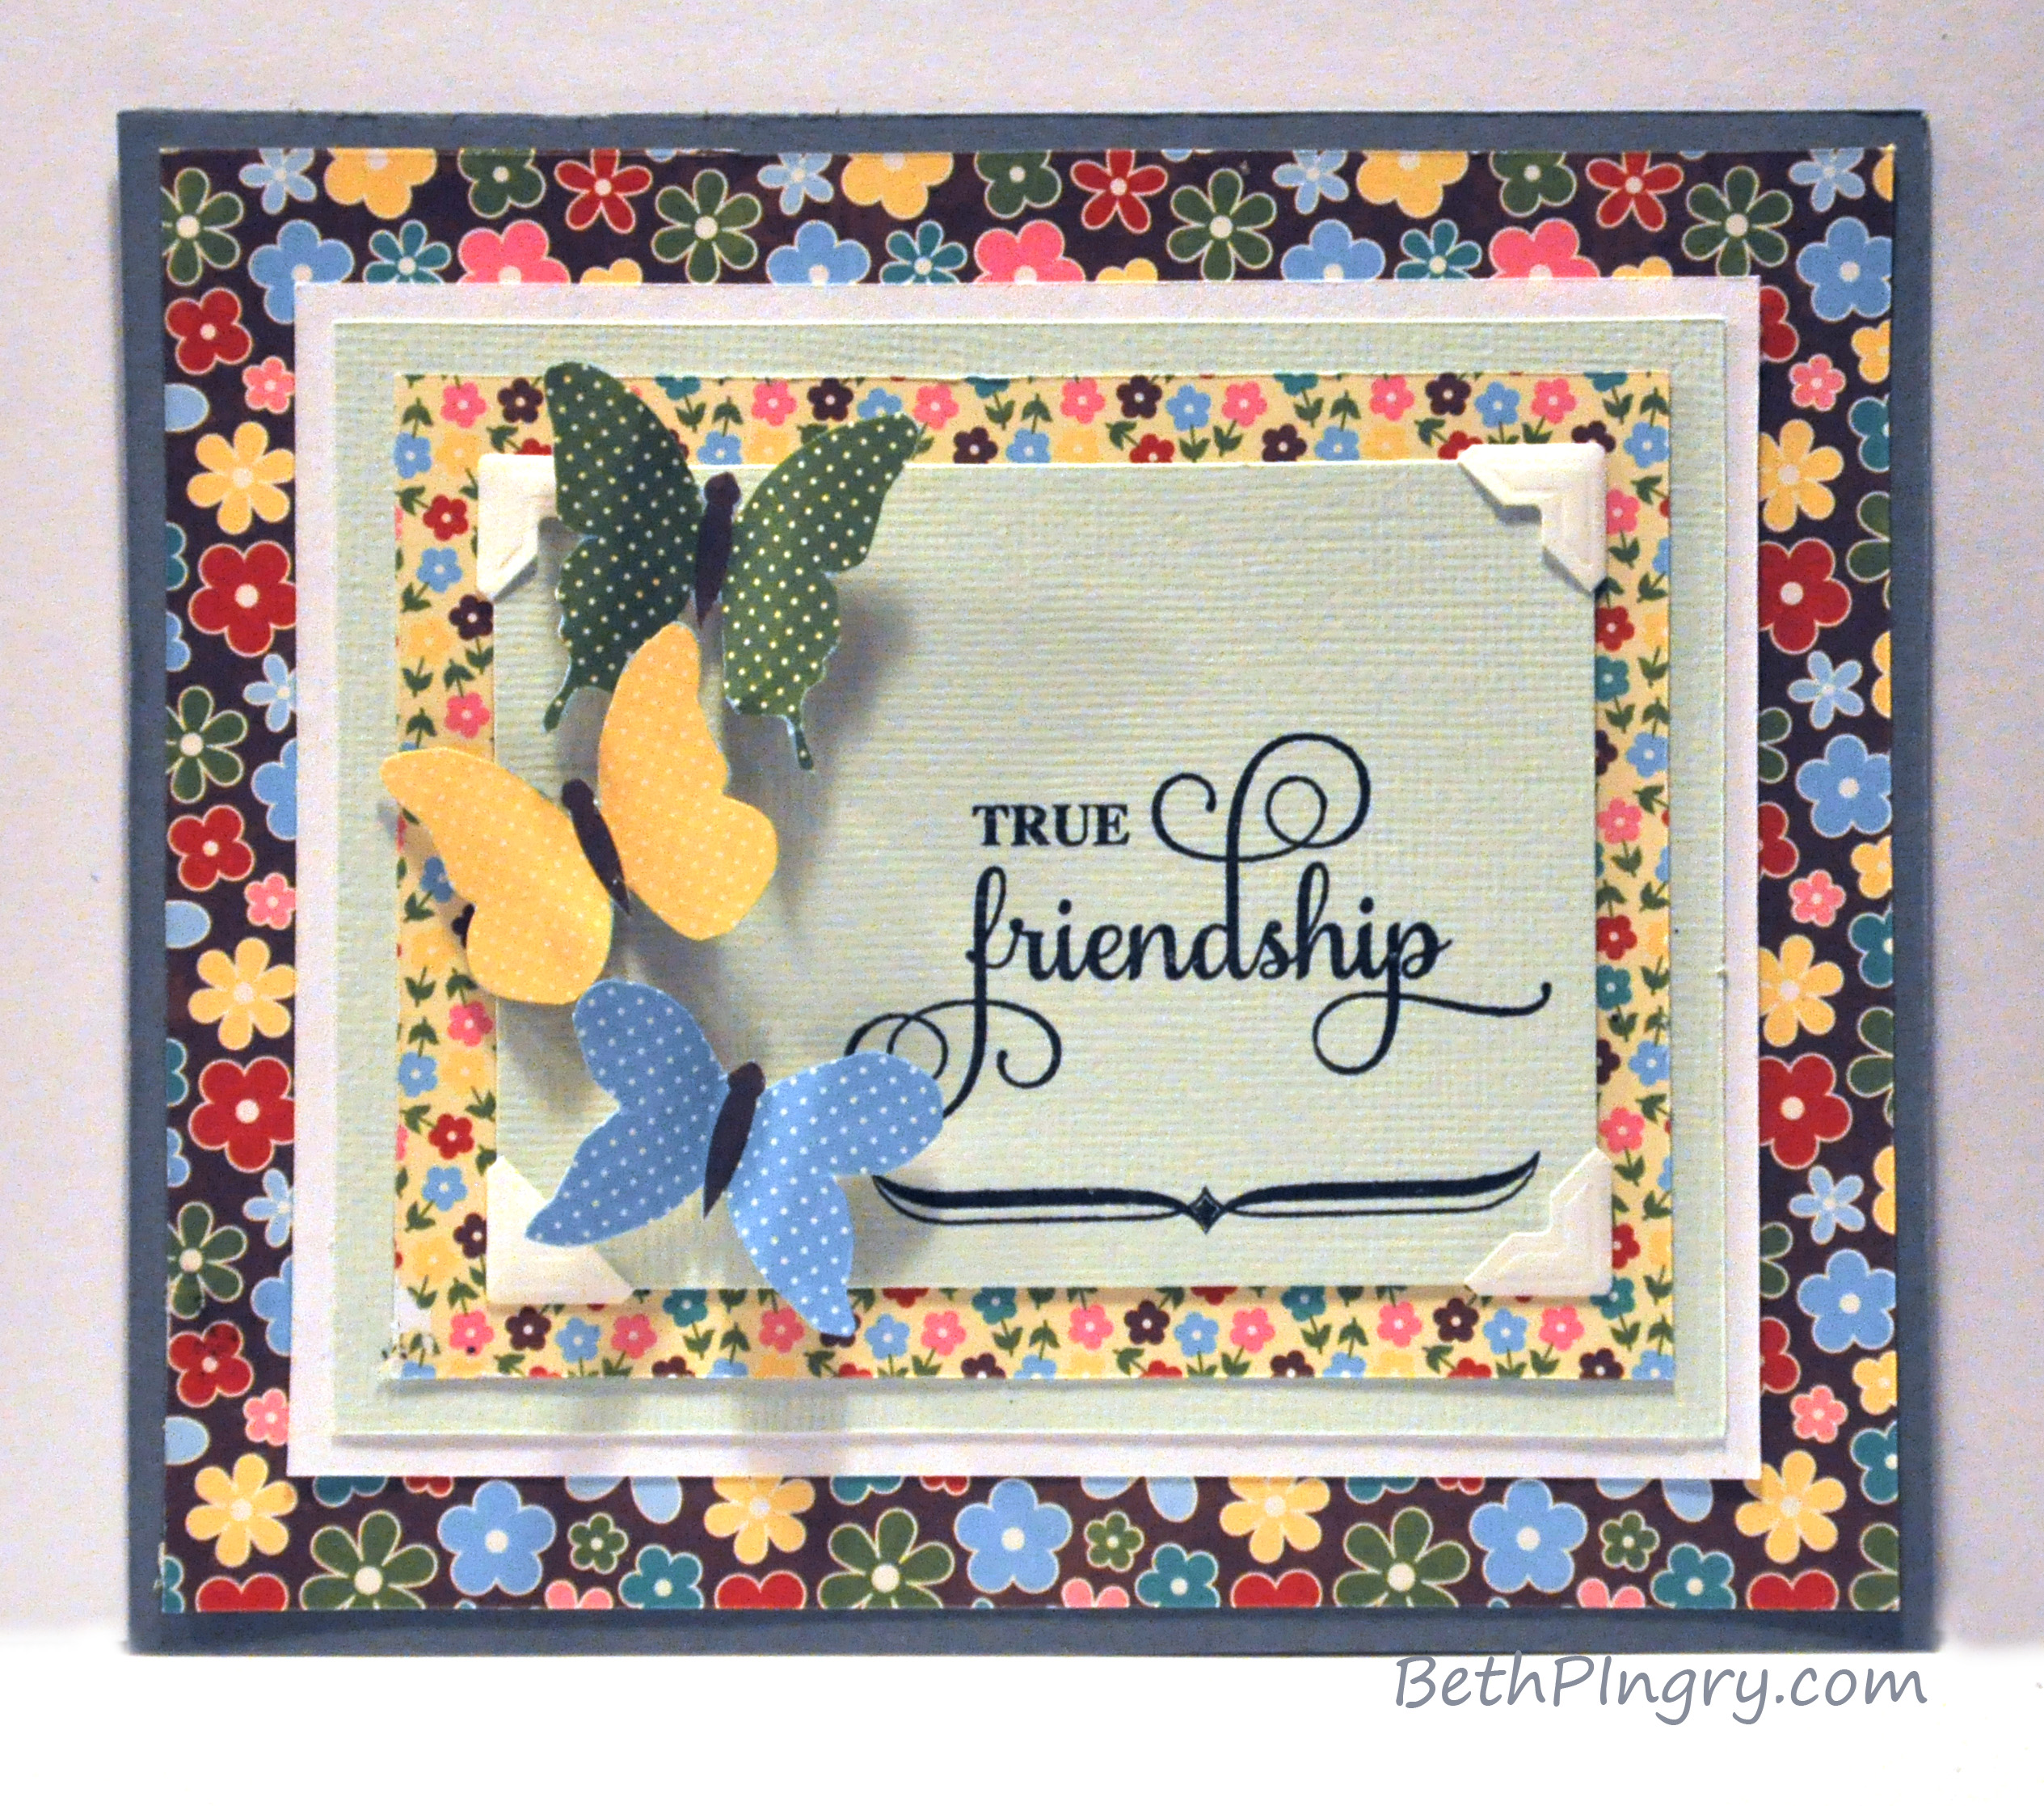 Wonderful How To Make Friendship Cards Part - 10: BethPingry True Friendship Card